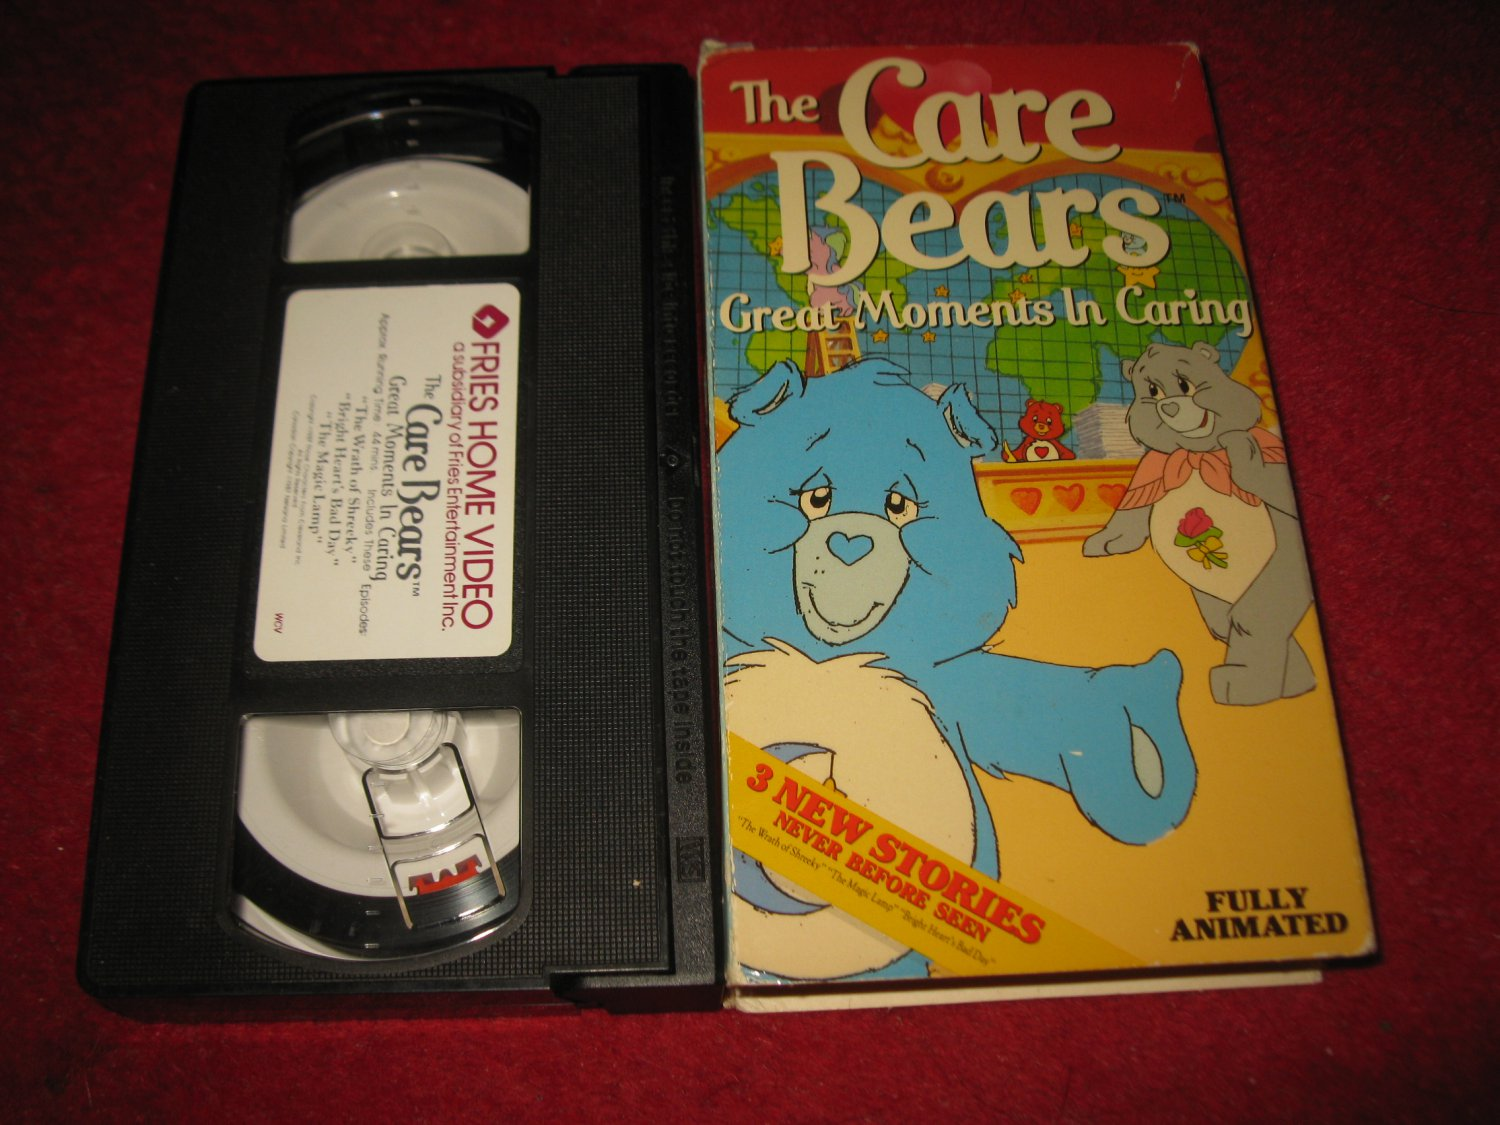 1987 The Care Bears VHS Movie : Great Moments in Caring